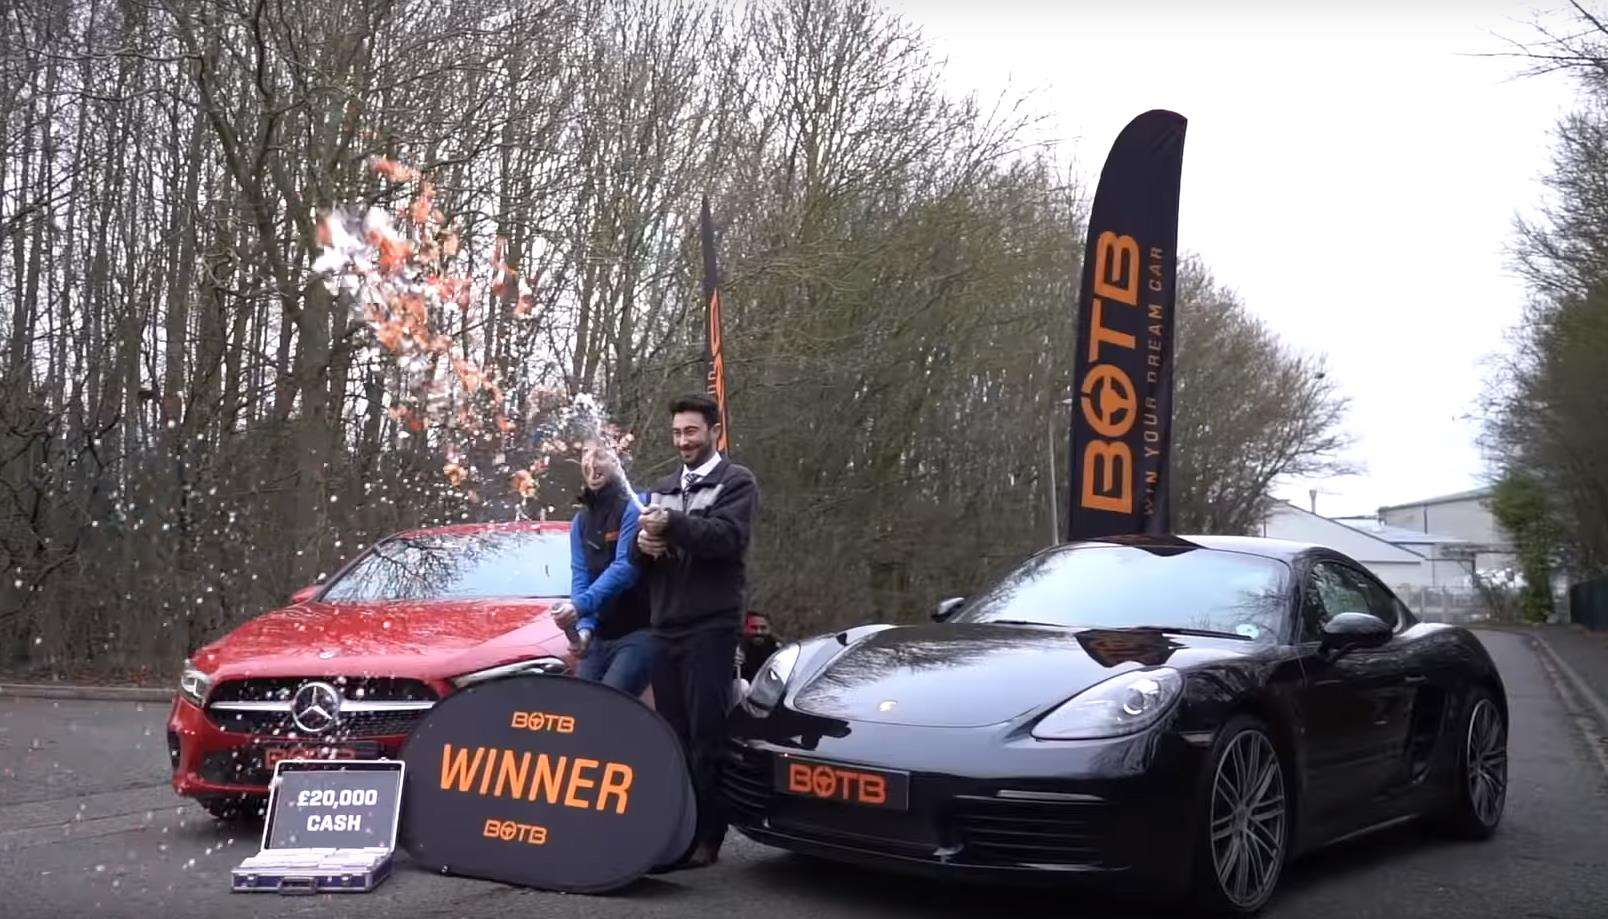 Kieran Groom, winner of two cars and £20,000 cash from BOTB, celebrates with Christian Williams